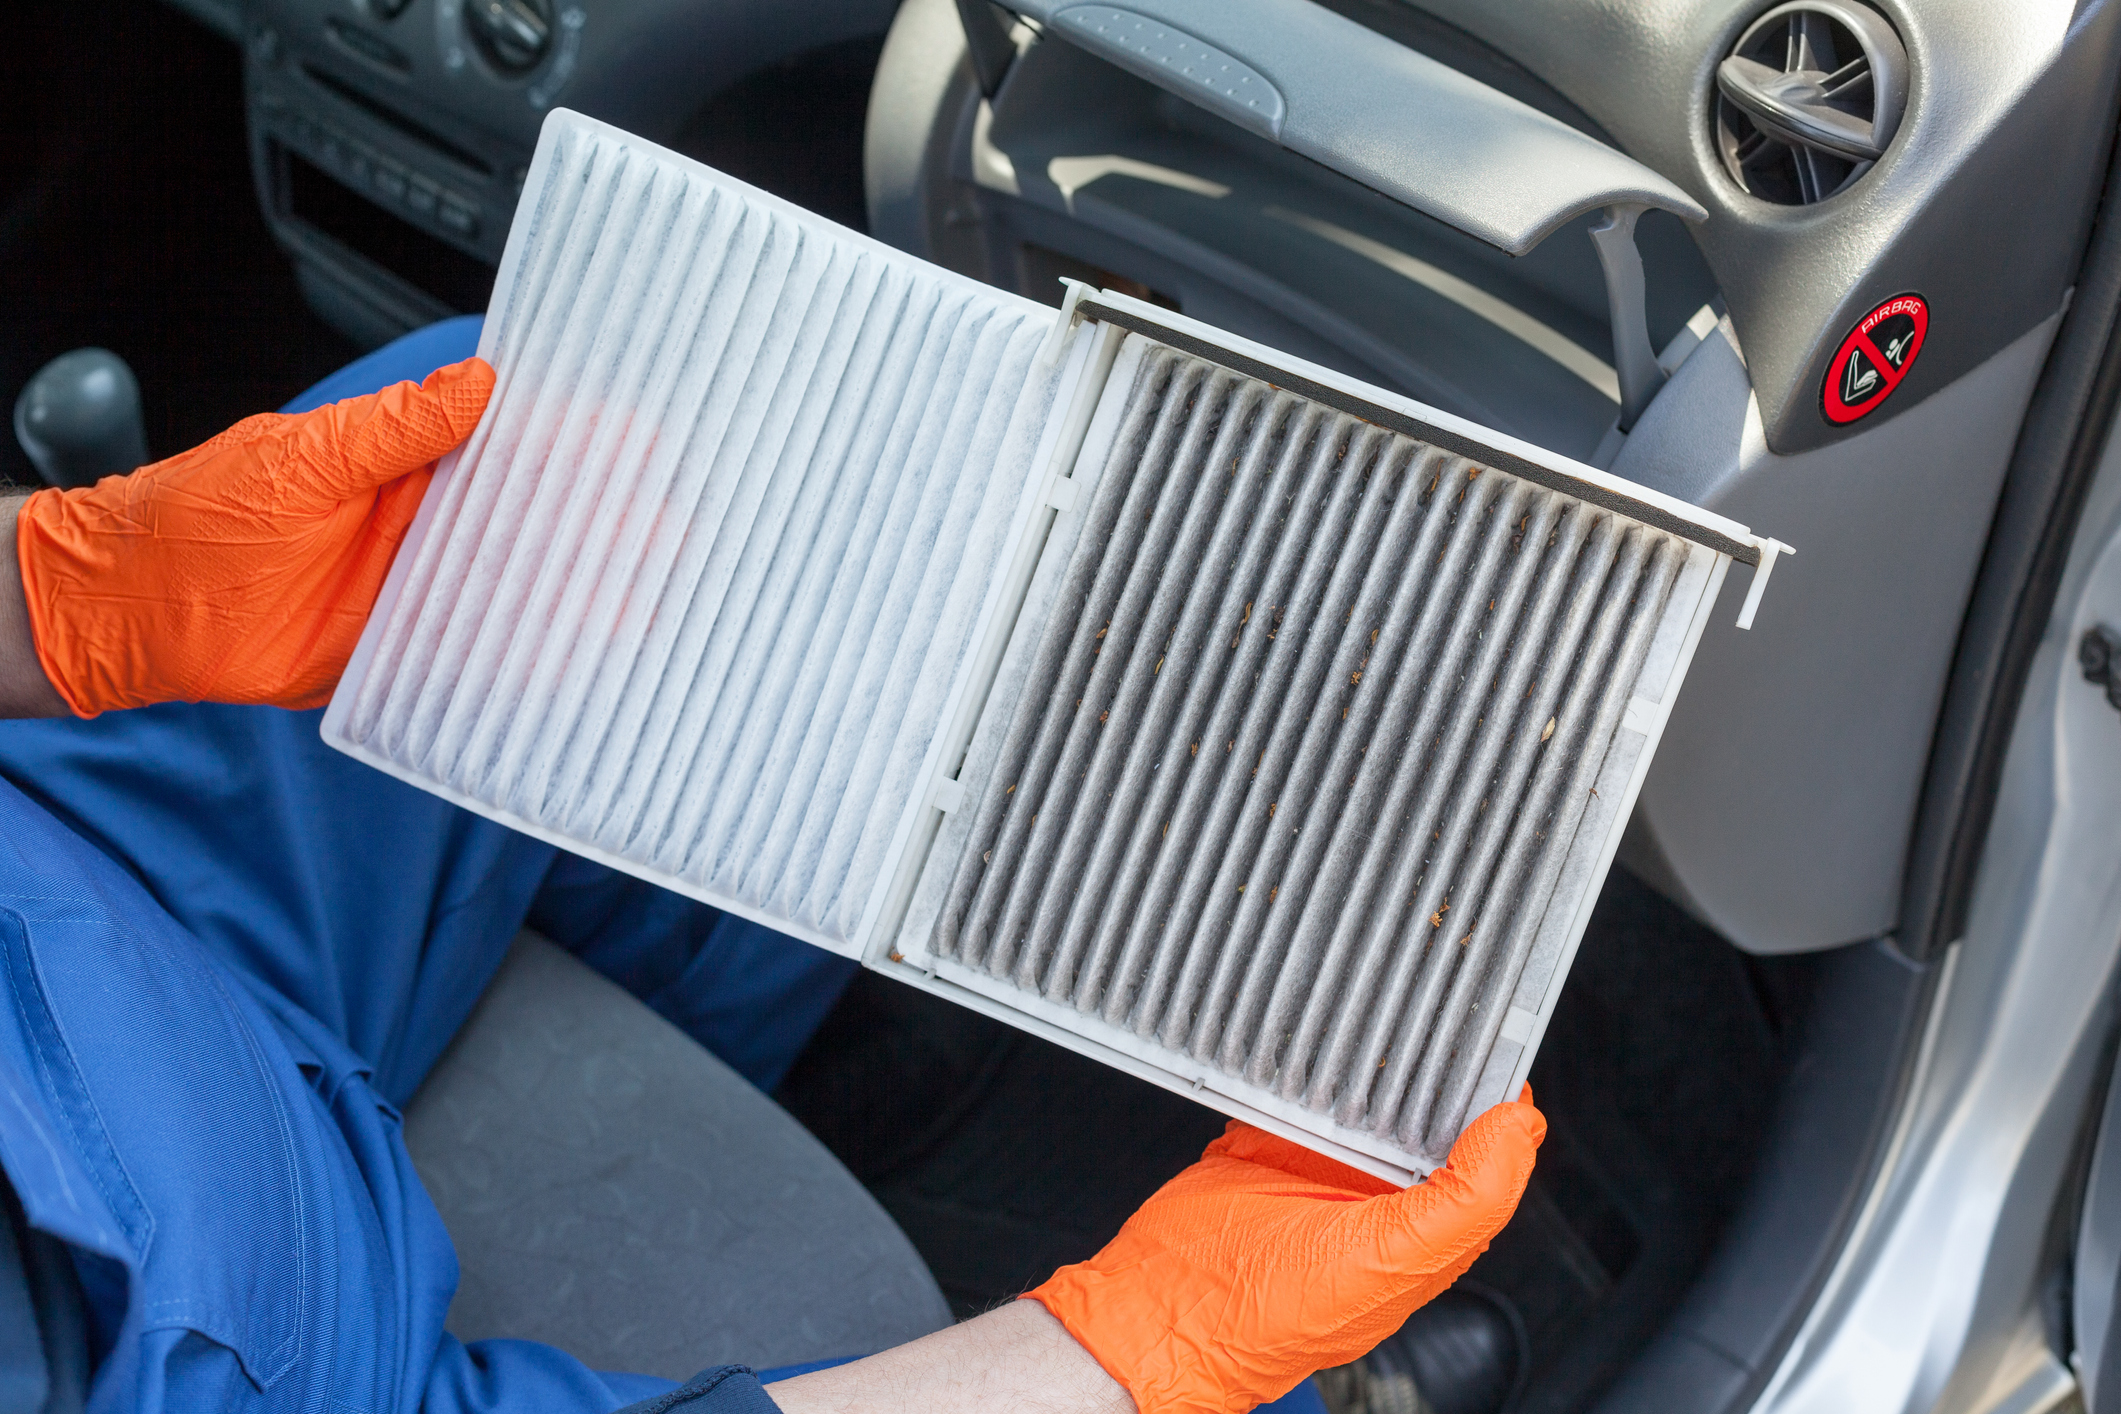 Cabin Air Filter Replacement near East Hampton, NY